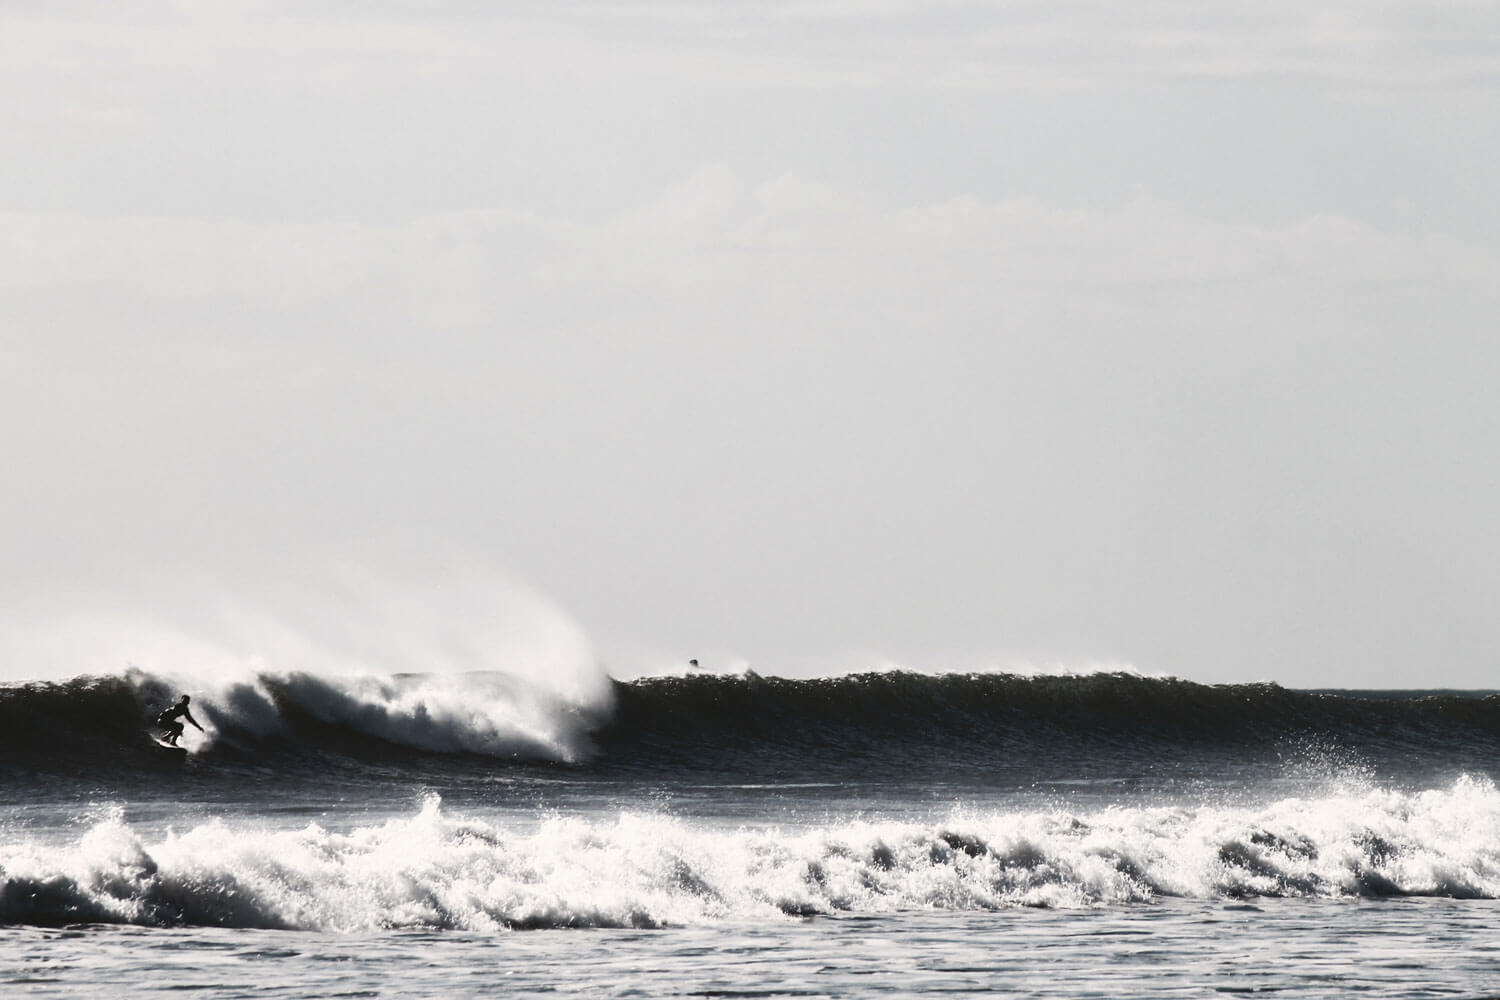 surfer surfing best waves in nicaragua with w by waagstein surfboards | SEIKK Magazine